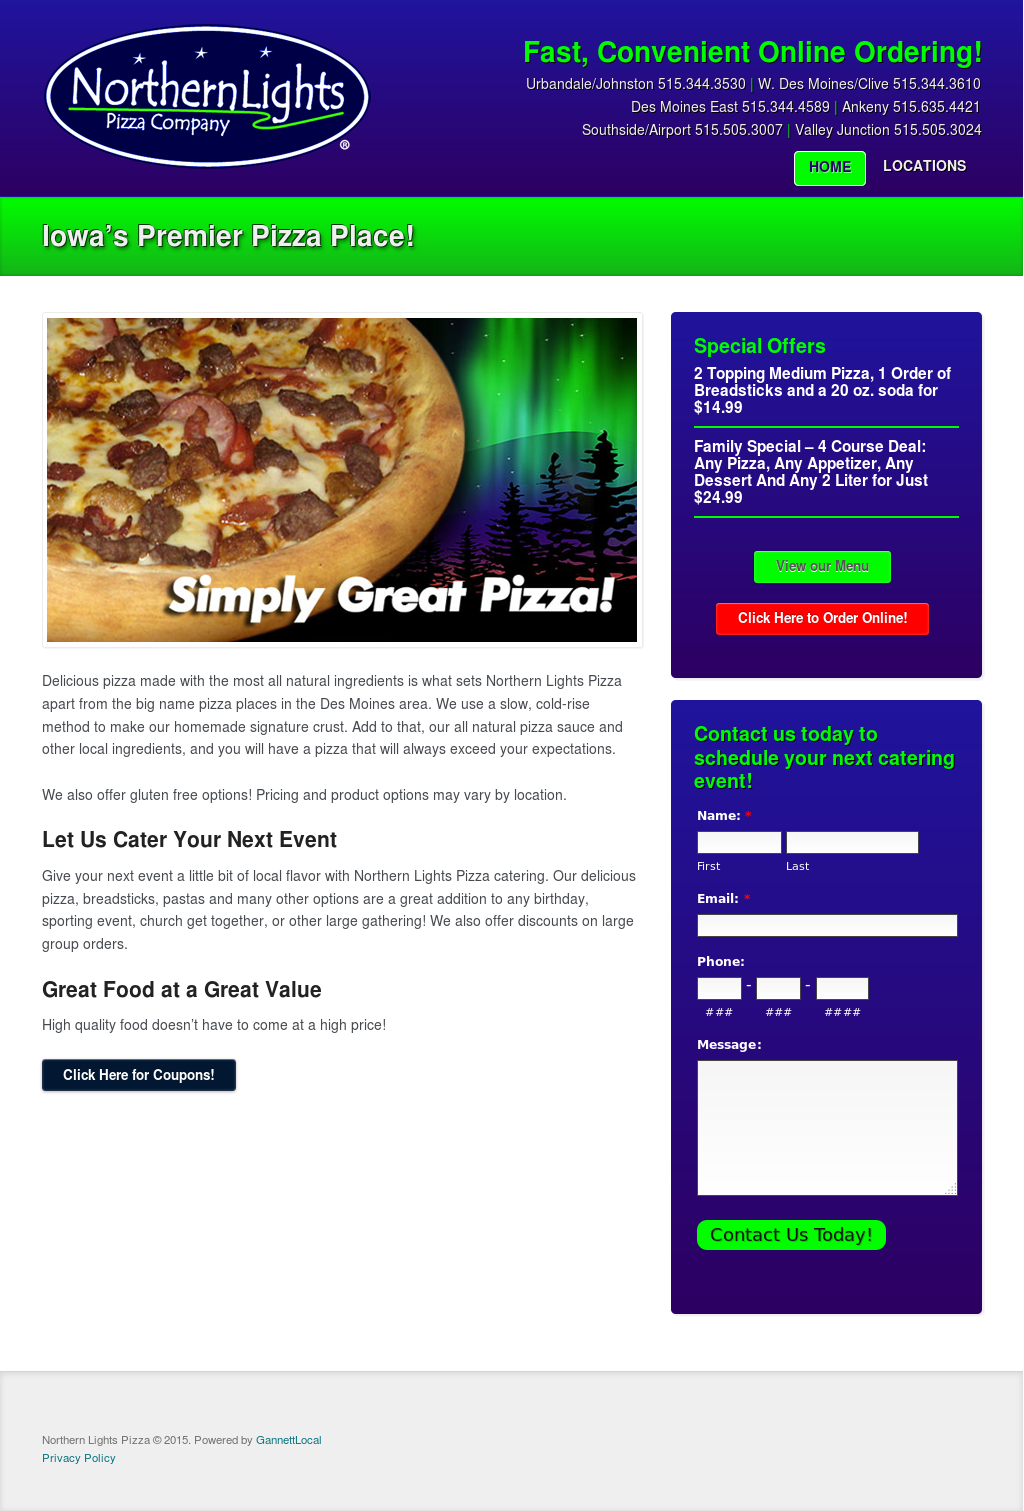 Northern Lights Pizza Website History